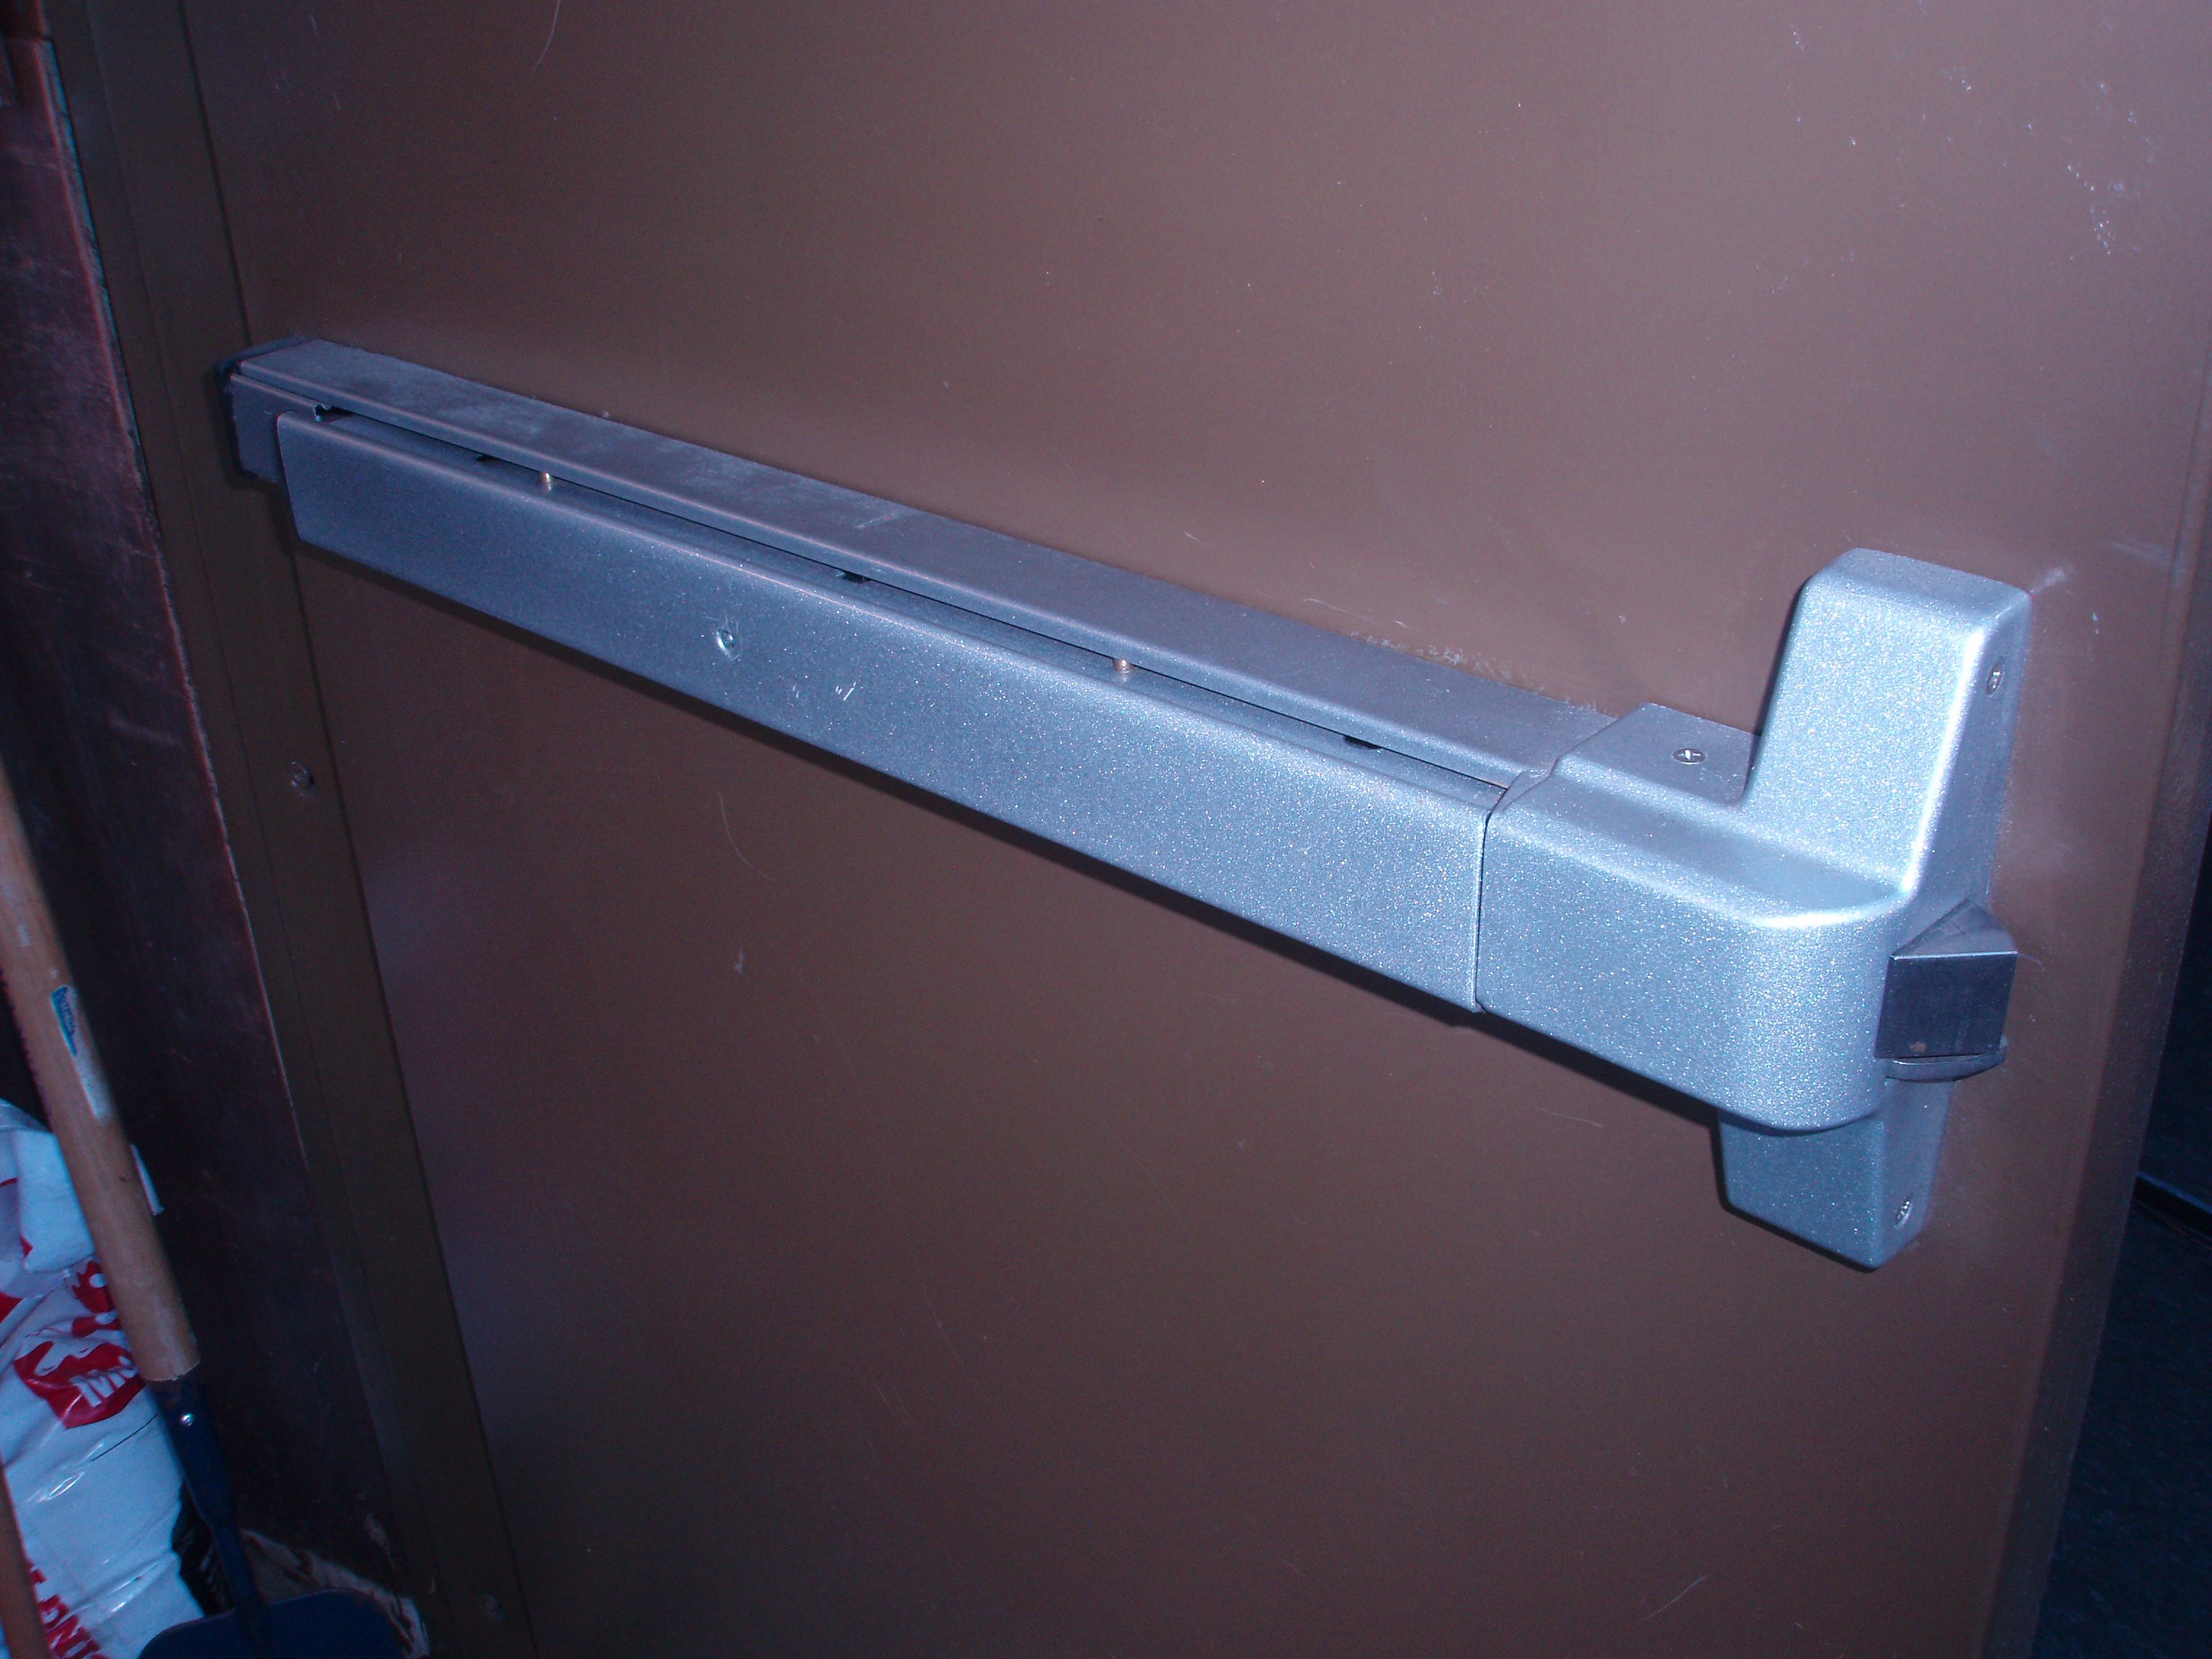 Panic Doors Panic Doors Push Paddle Cold Storage Doors Panic Bar Handle Positive Temperature